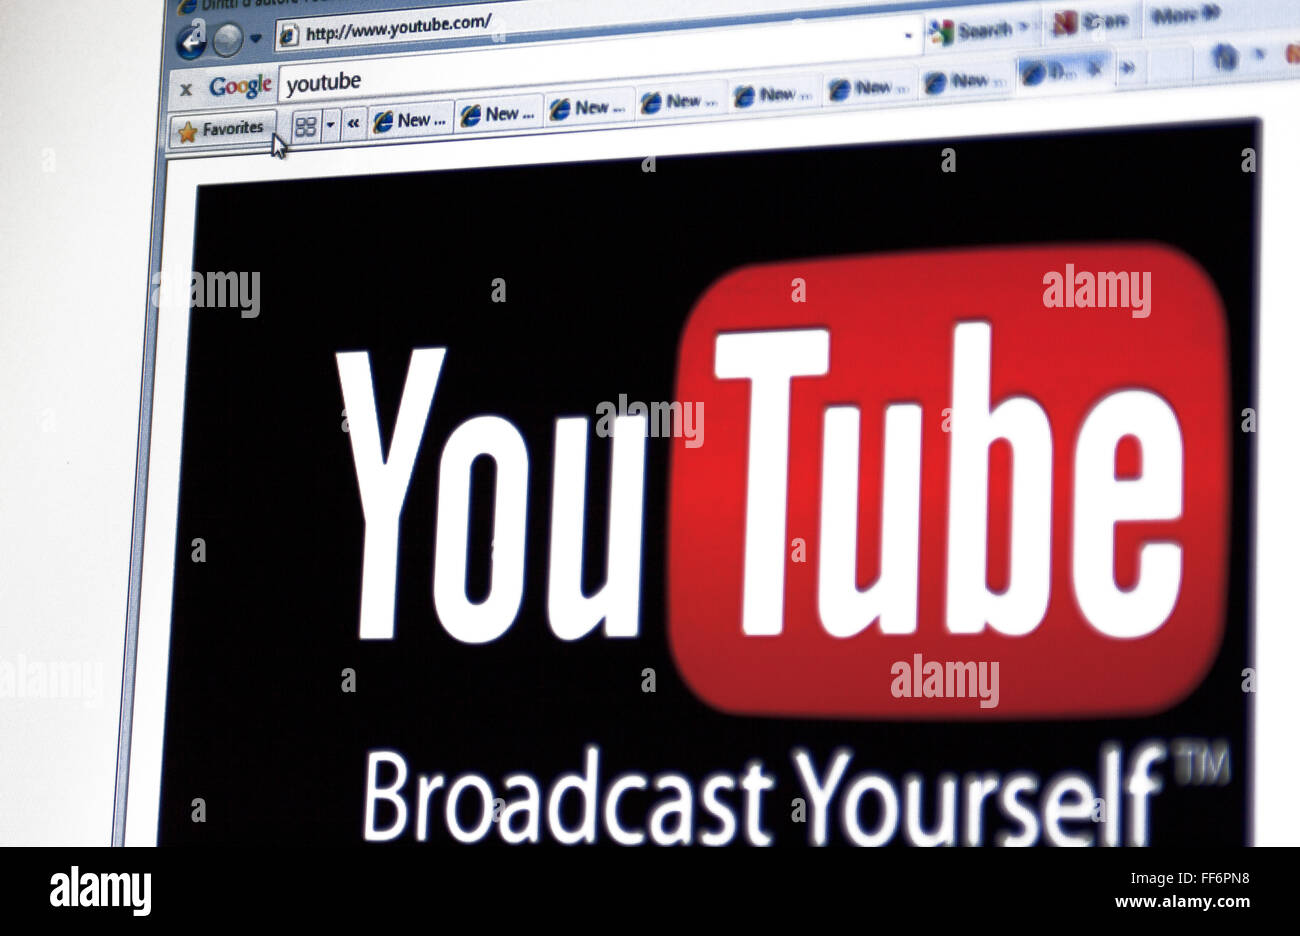 A close up shot of an LCD screen showing the Youtube logo on the